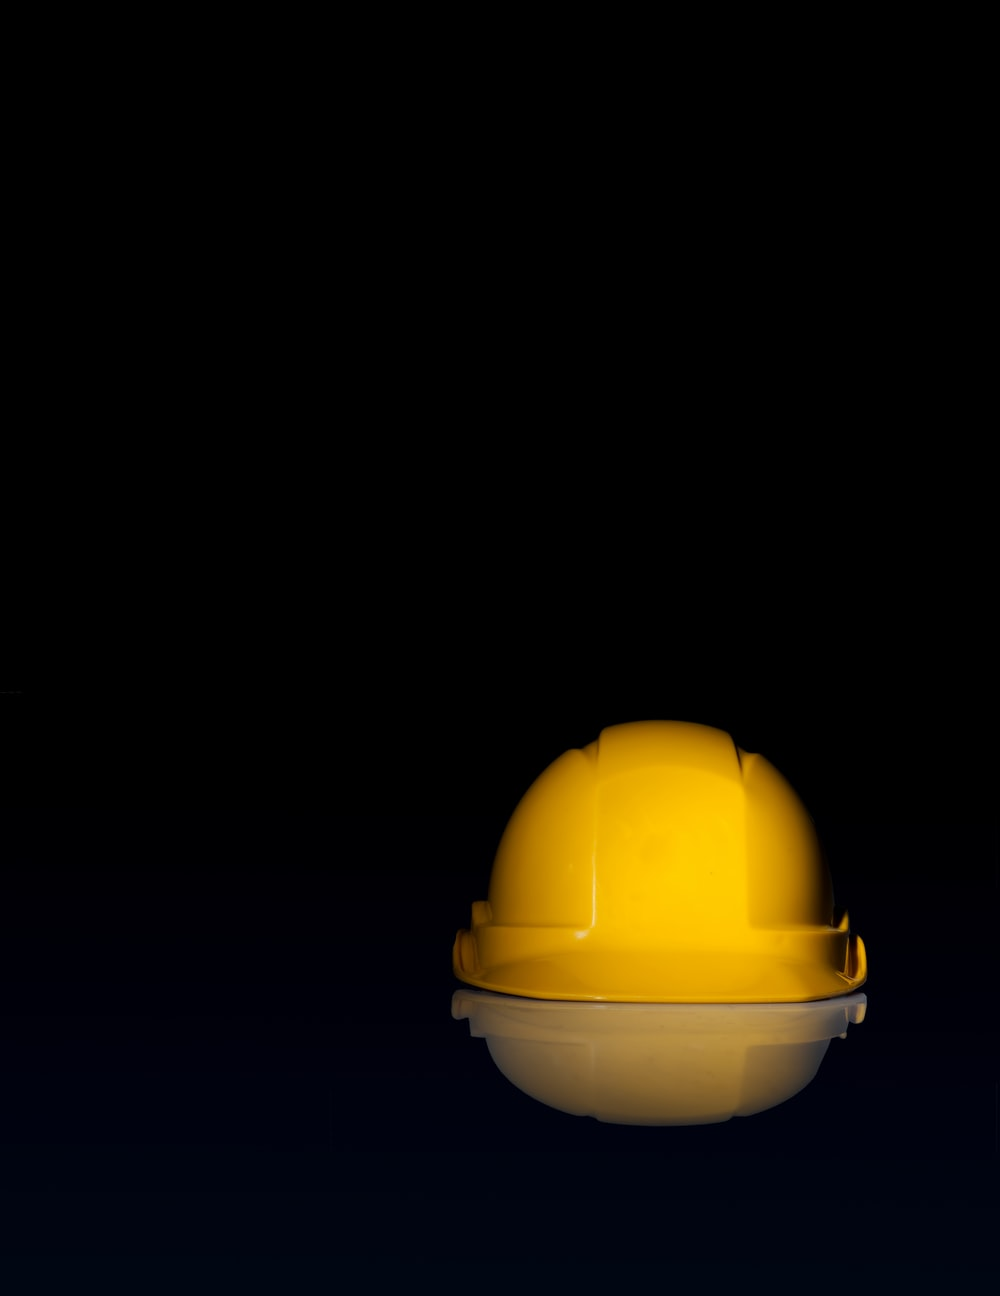 yellow safety hat on black surface